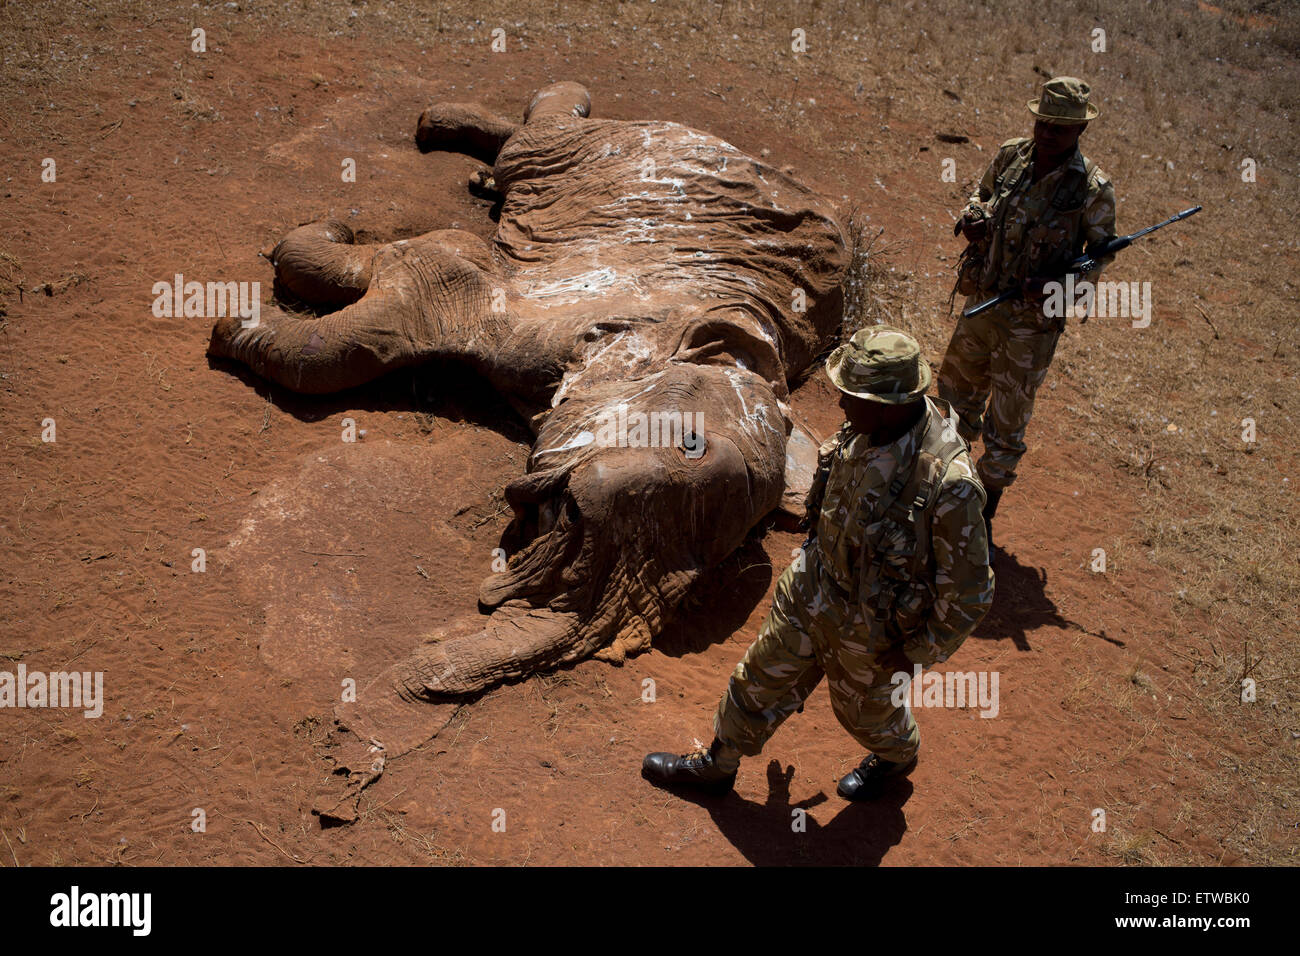 Kenya Wildlife Rangers from the anti poaching unit look at an elephant that was killed by poachers with a poison - Stock Image